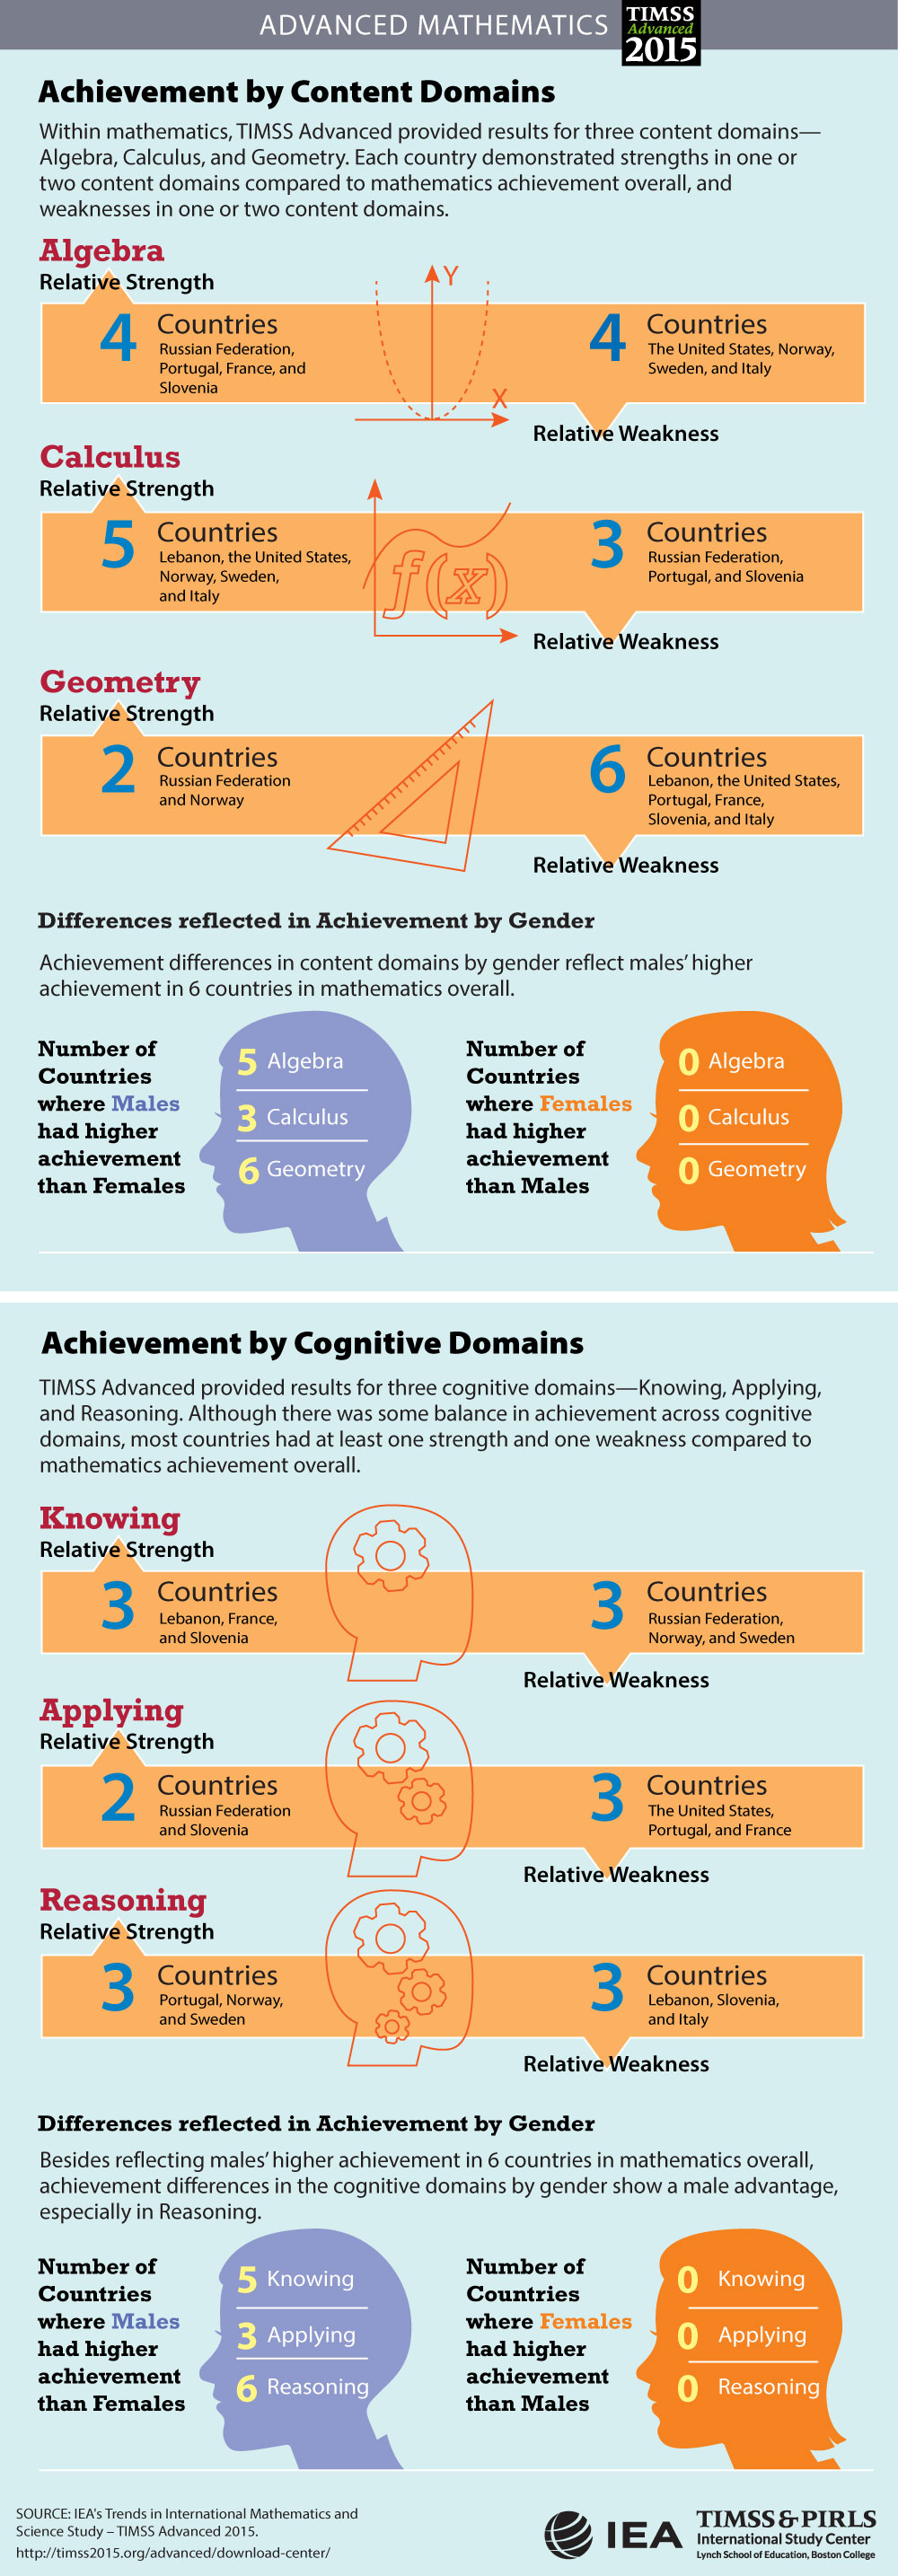 Achievement in Content and Cognitive Domains Infographic